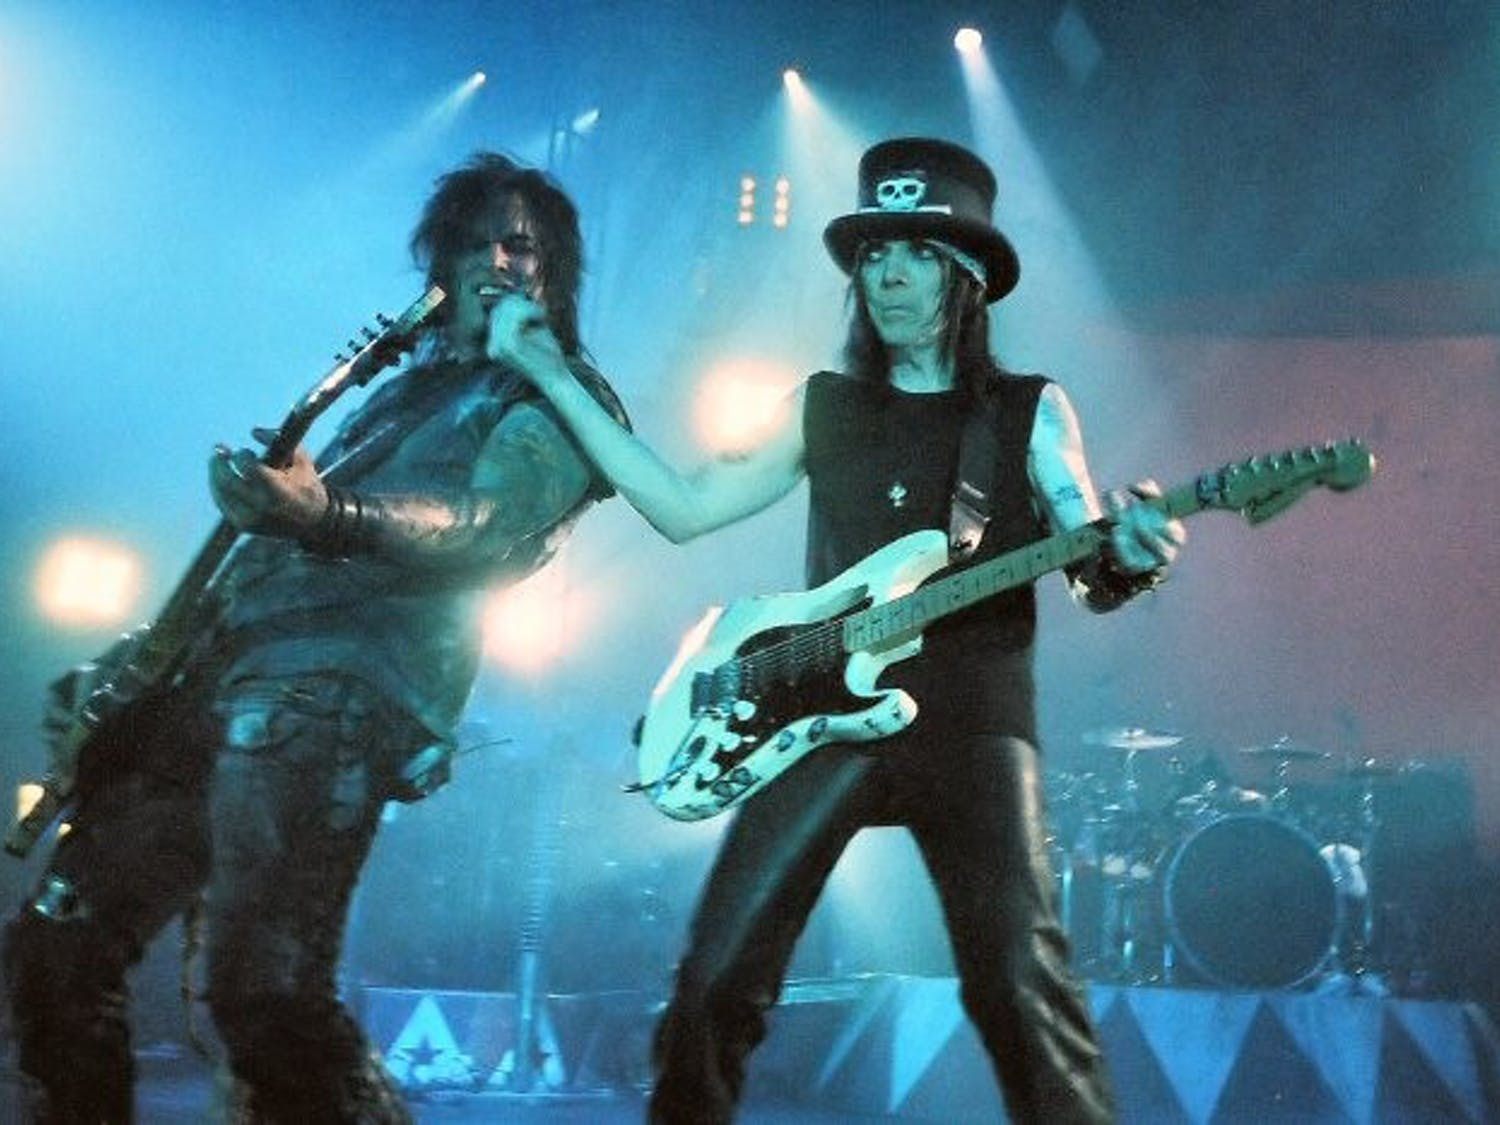 """Mӧtley Crüe deliver a hard-hitting serving of drug-induced tales of rock in Netflix's """"The Dirt."""" The problem is there's little else there to relish."""